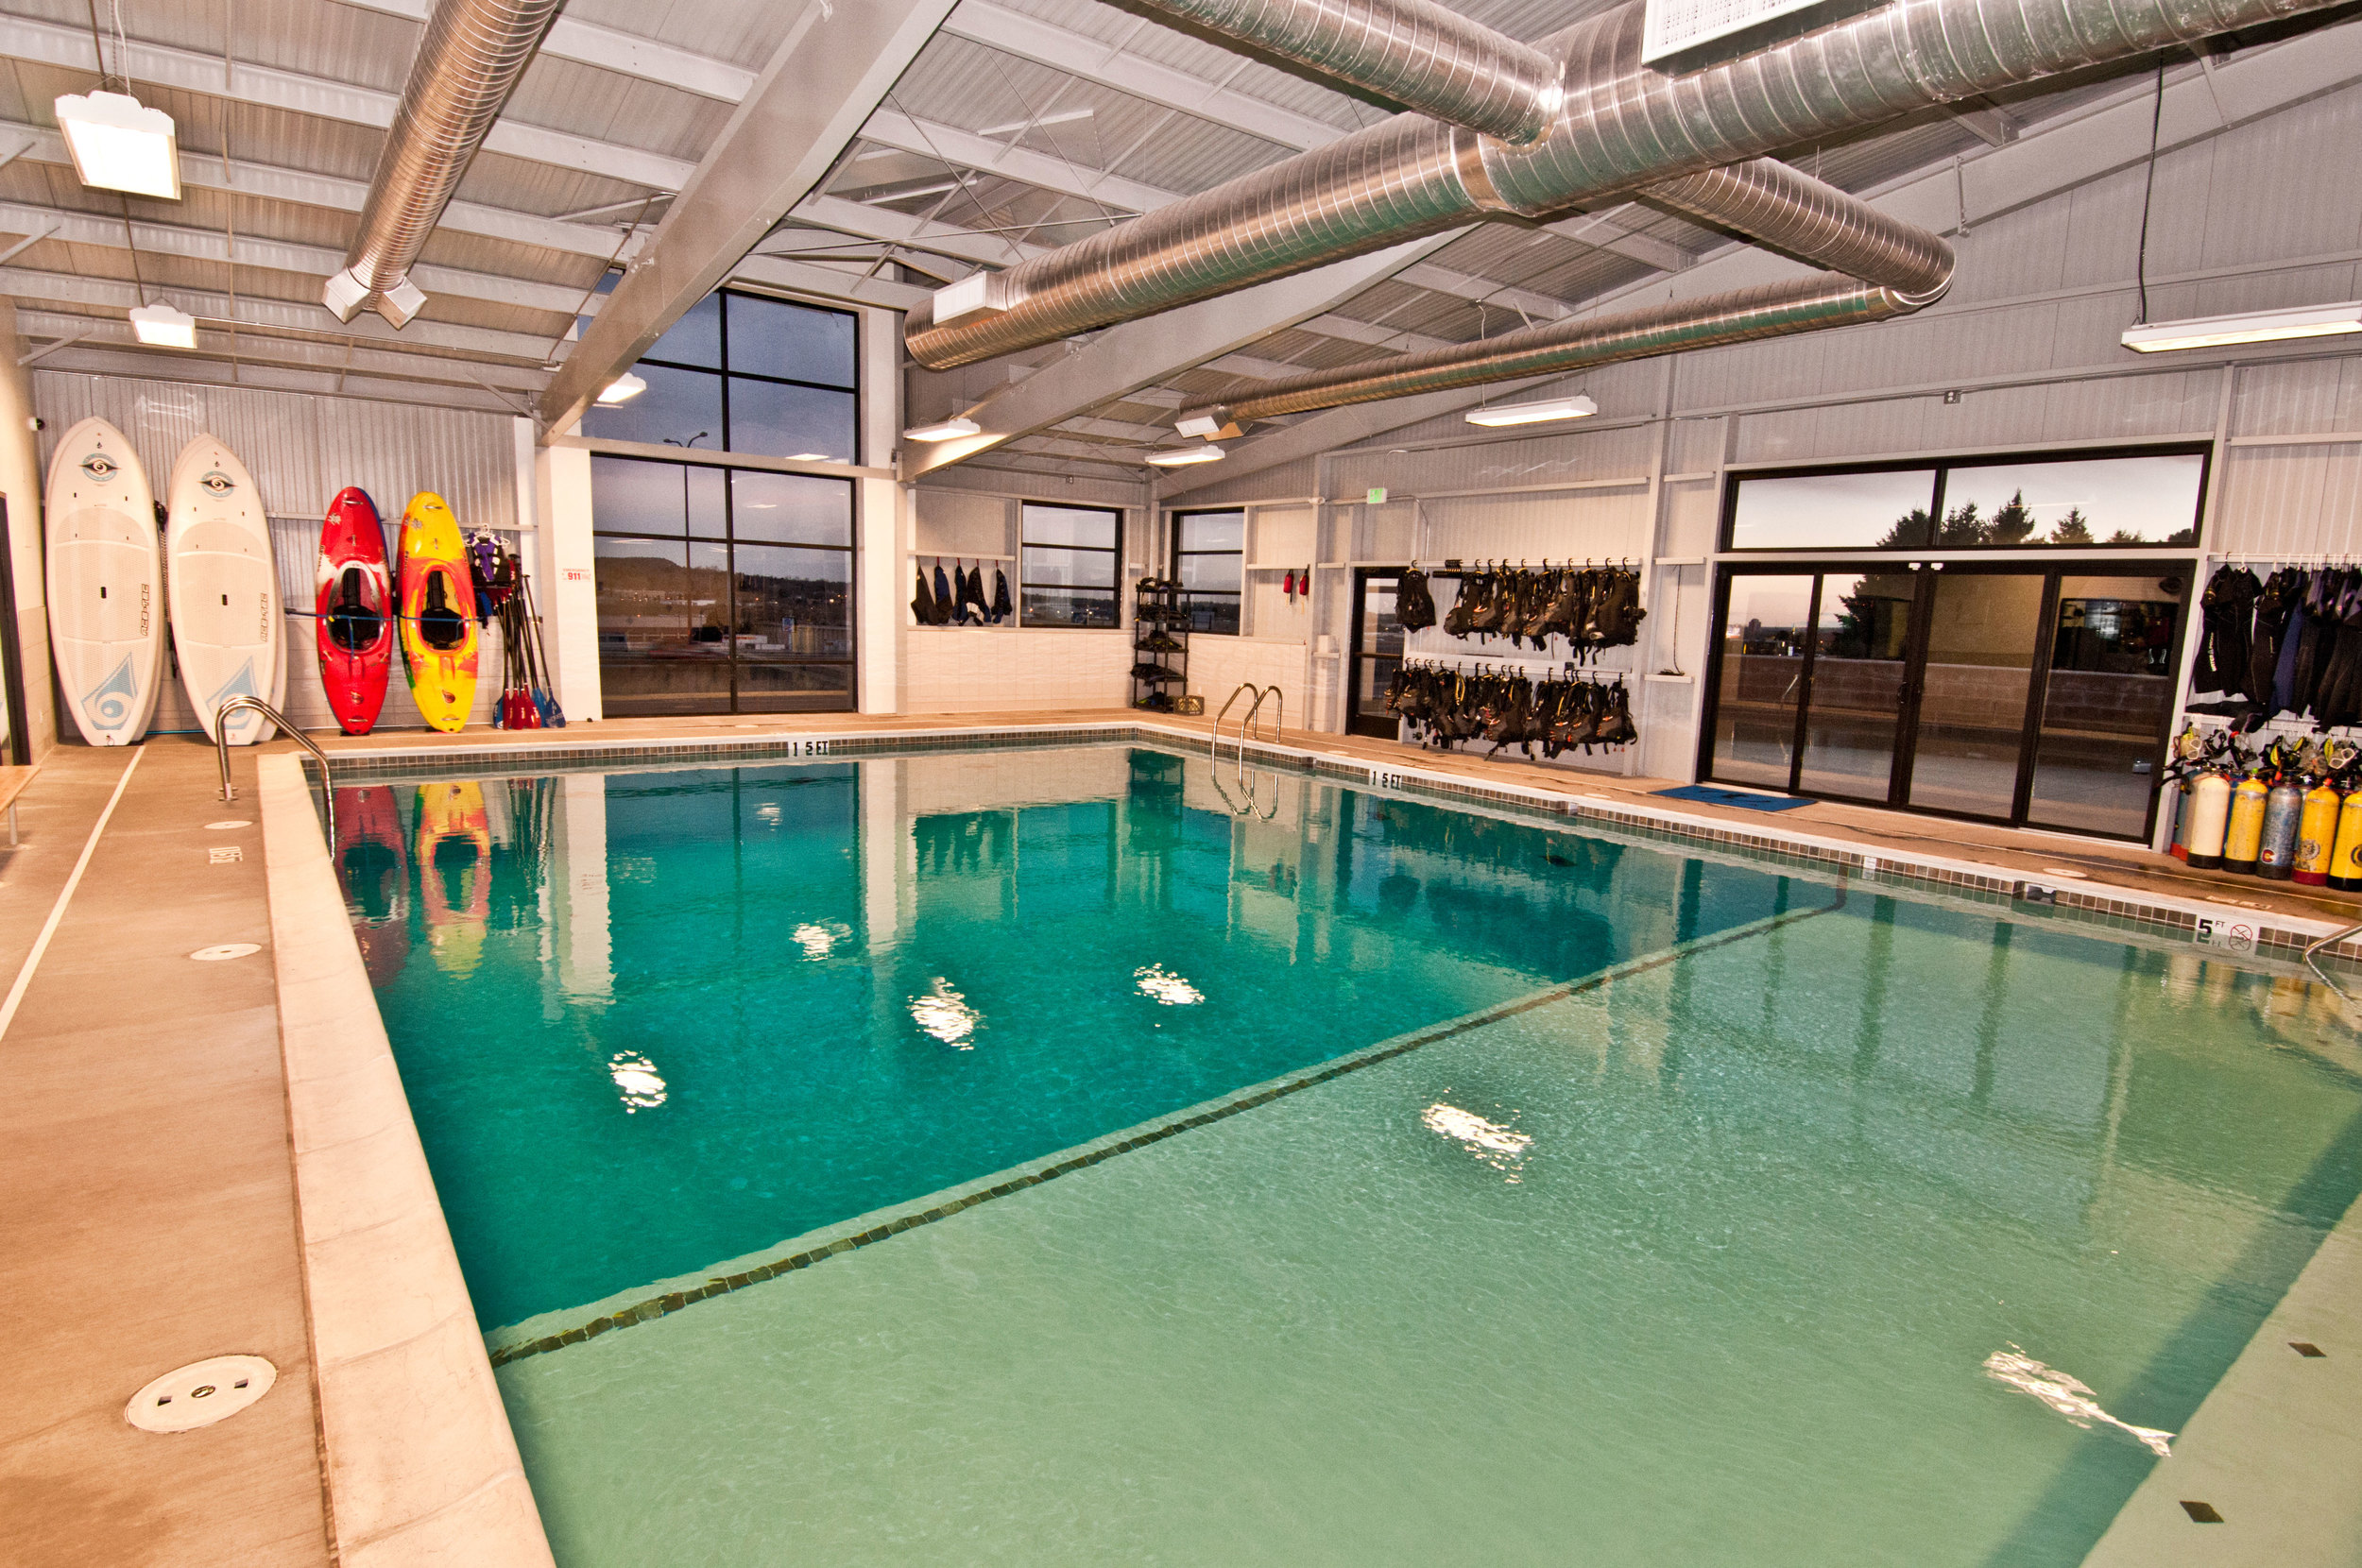 Our pool facility is maintained by a Certified Pool Operator and is kept at a warm 88 degrees F.